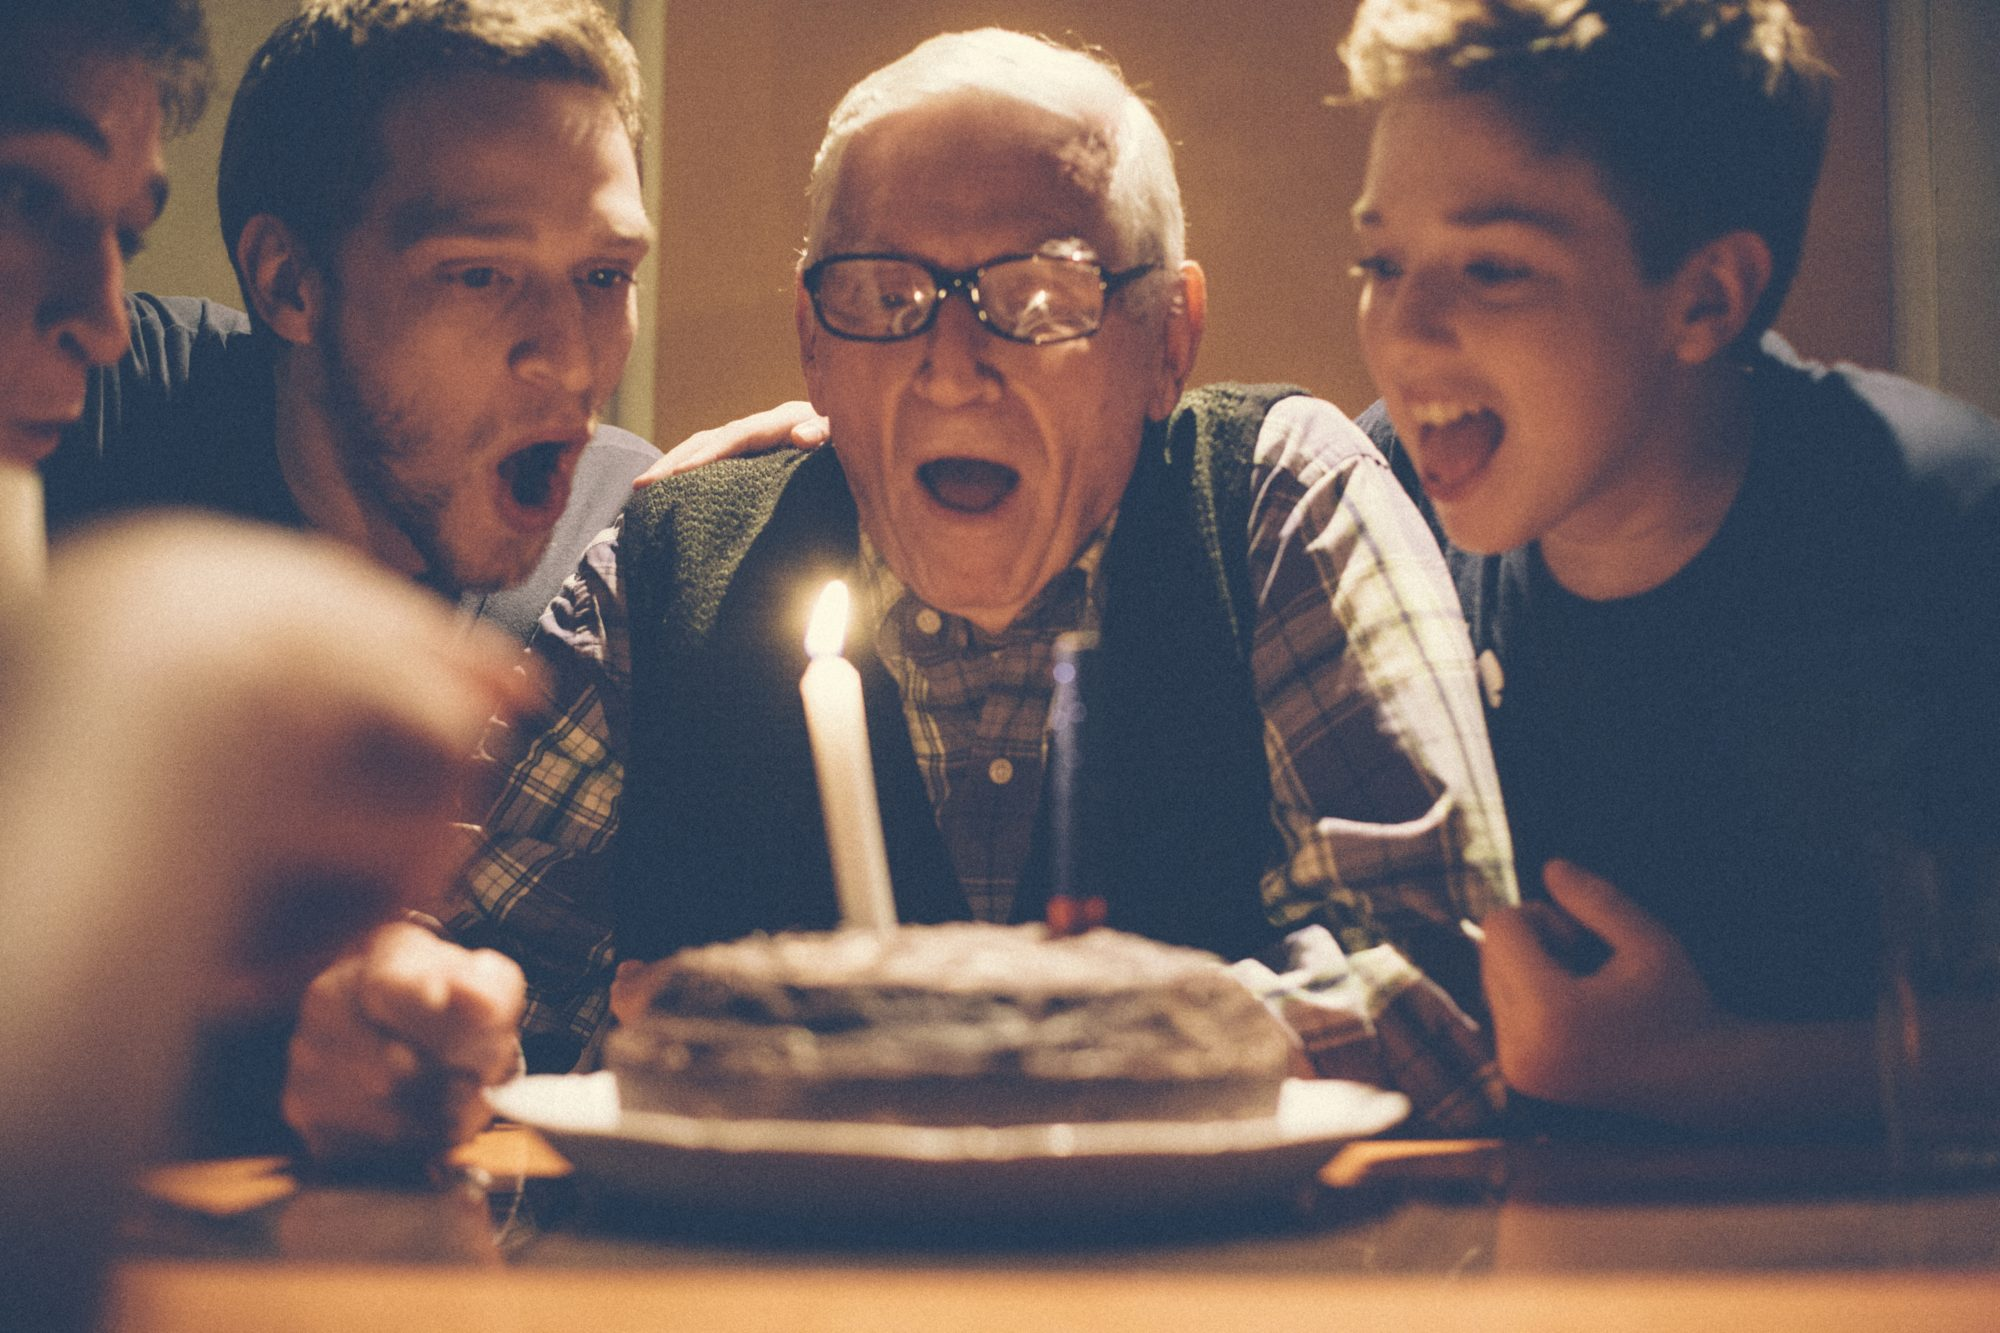 Young Men Celebrating Grandfathers Birthday Blowing Out Candles on Cake